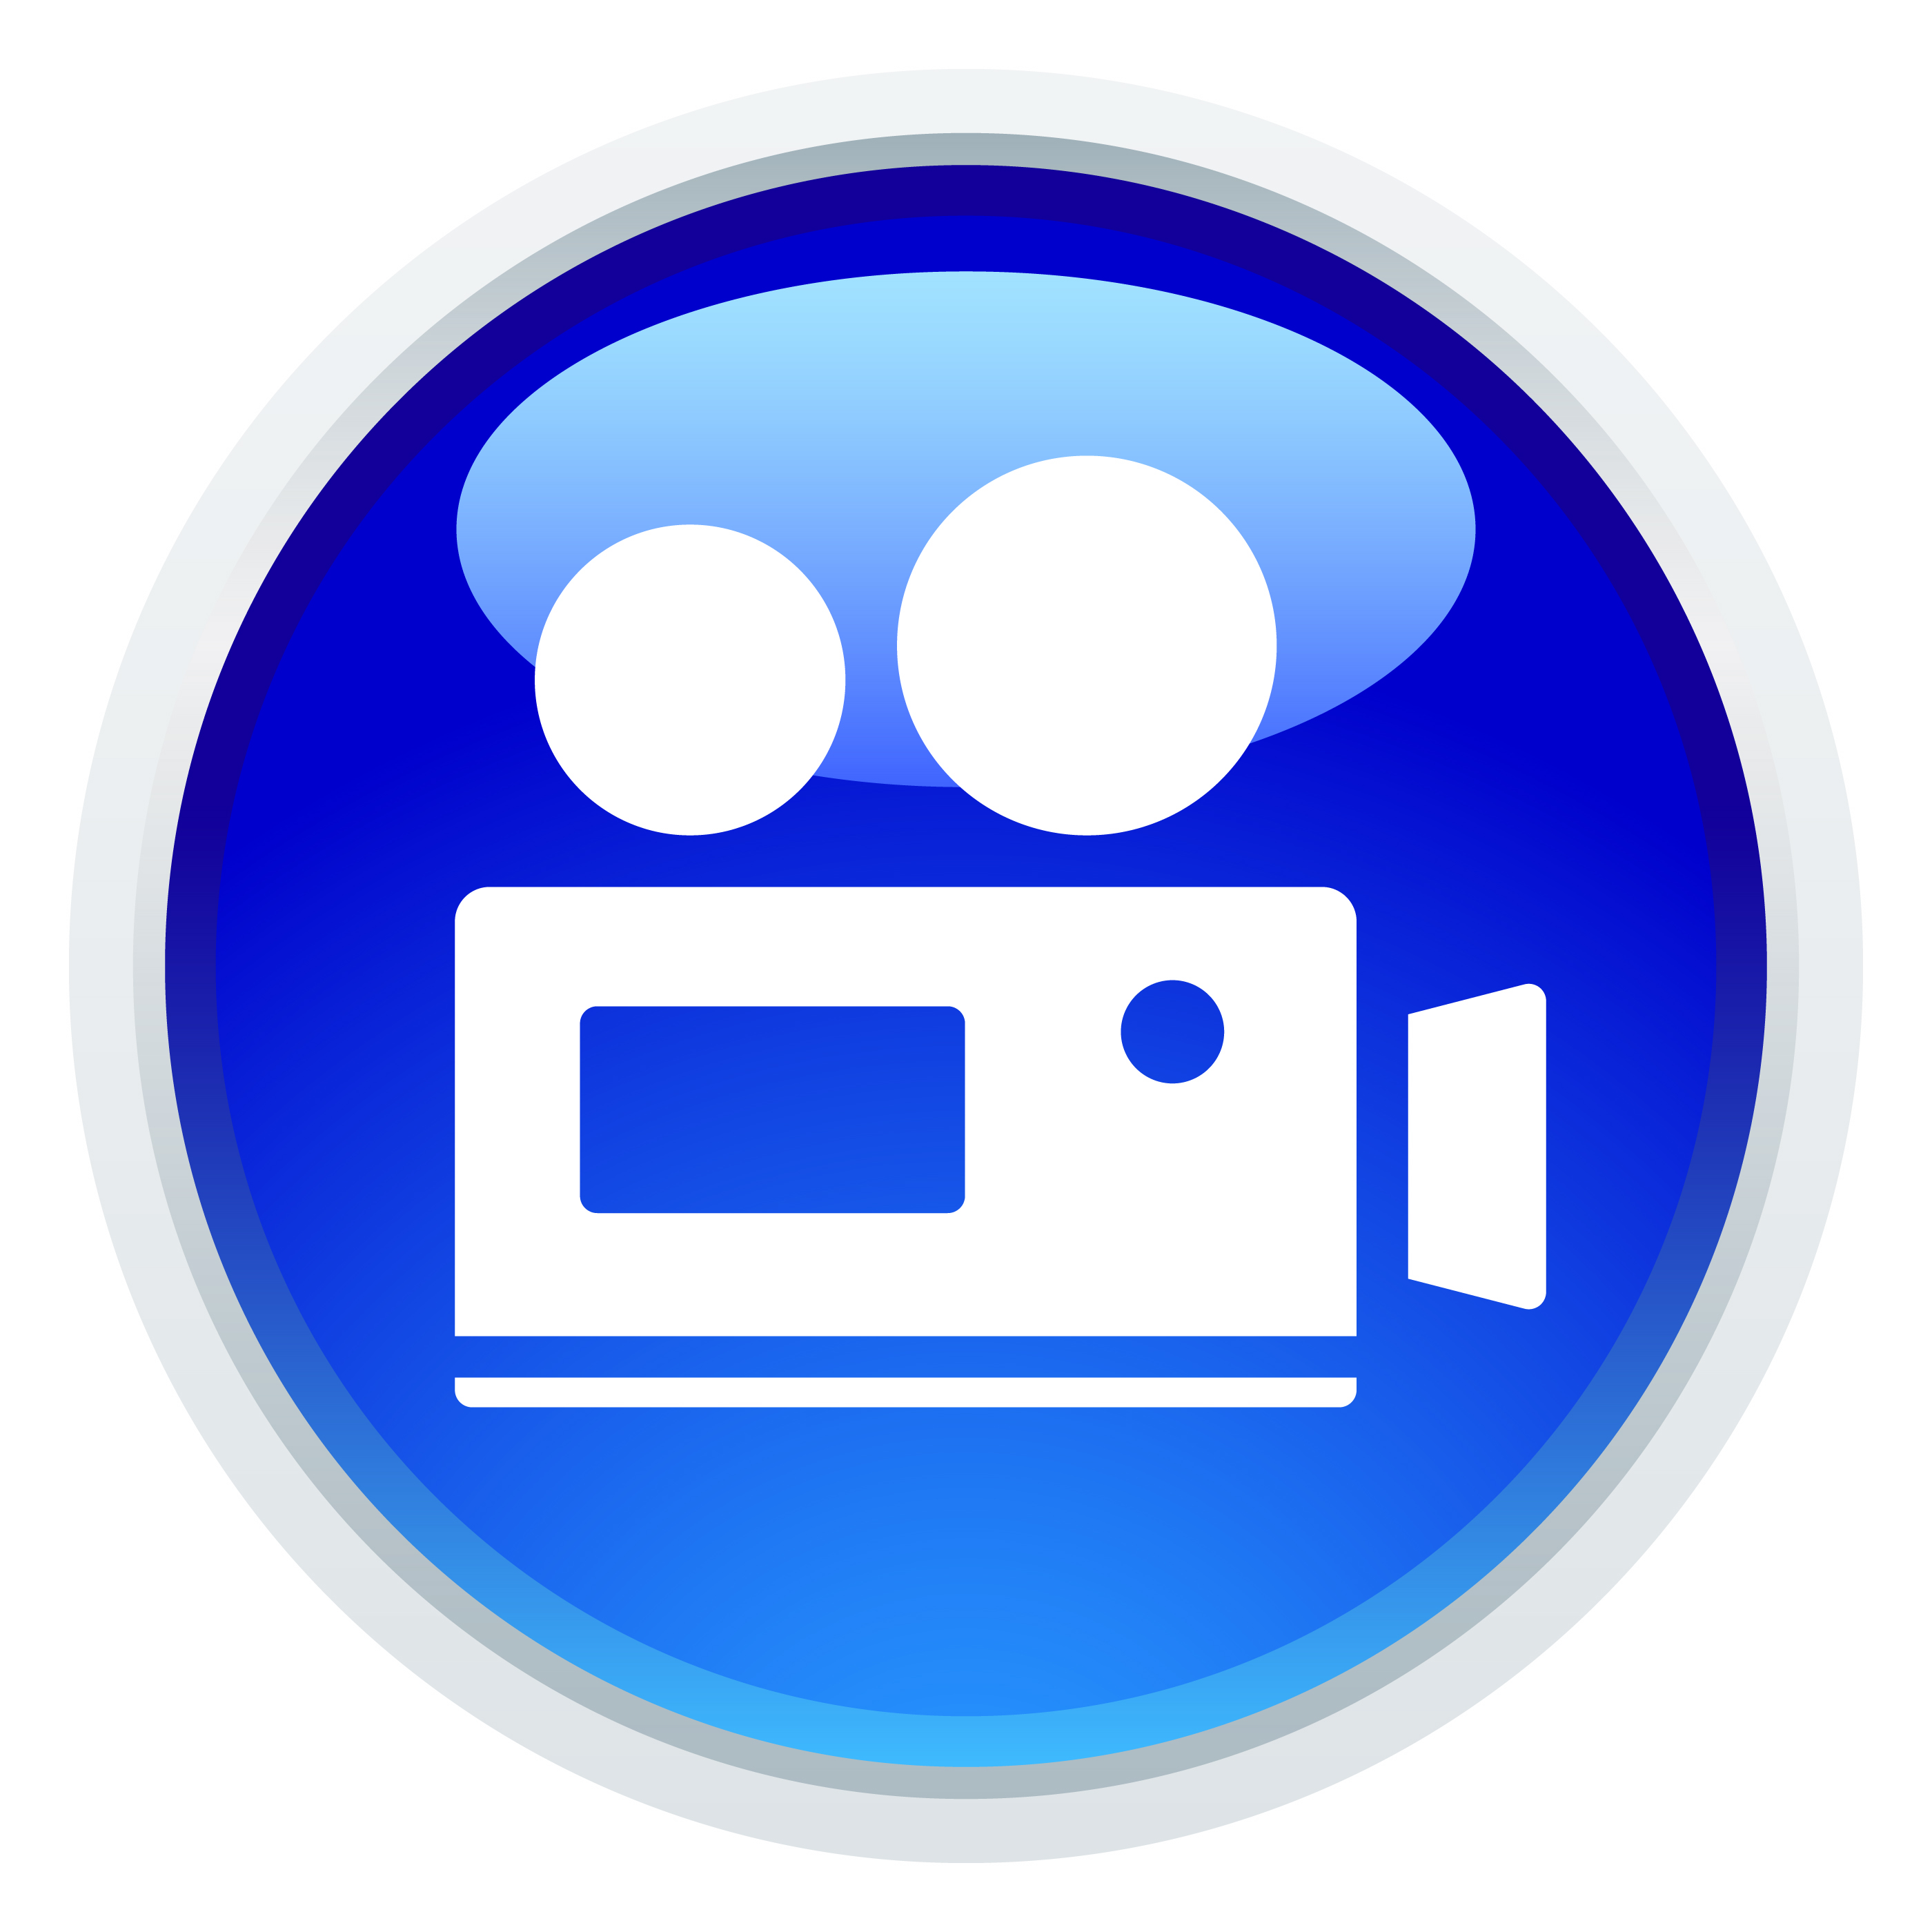 10265 Video free clipart.